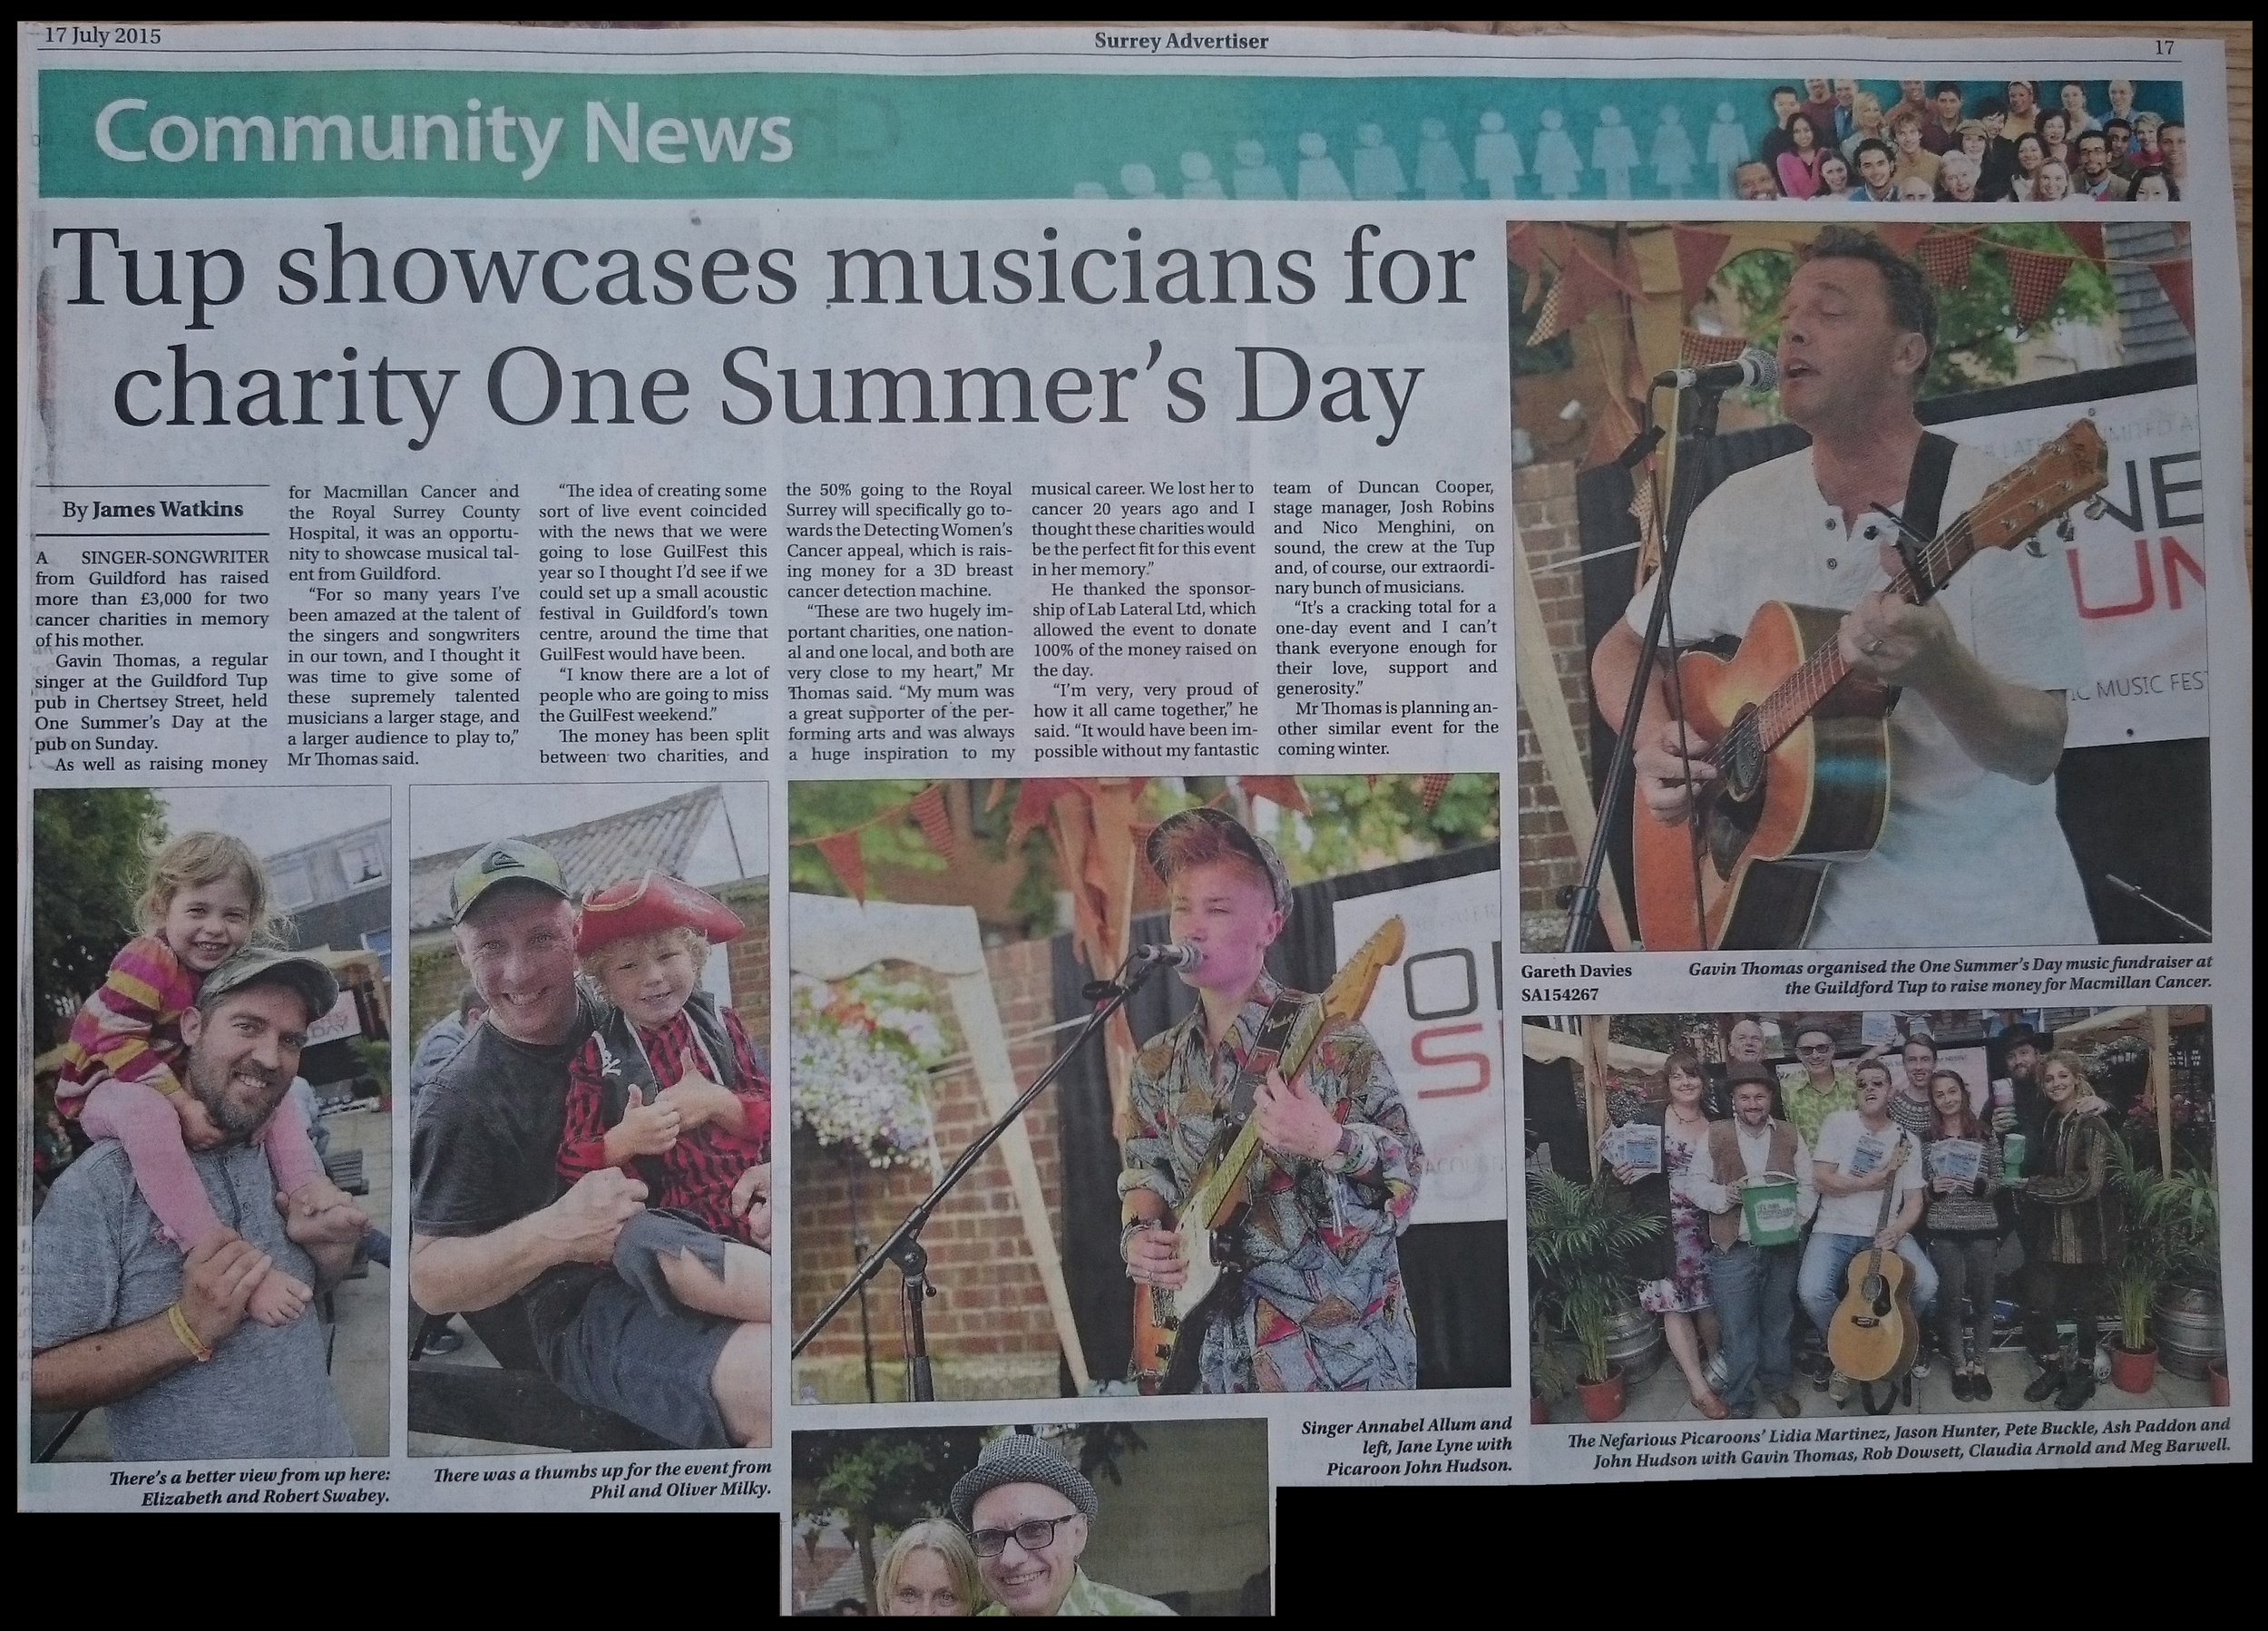 Review of OSD '15 in The Surrey Advertiser 17th July 2015